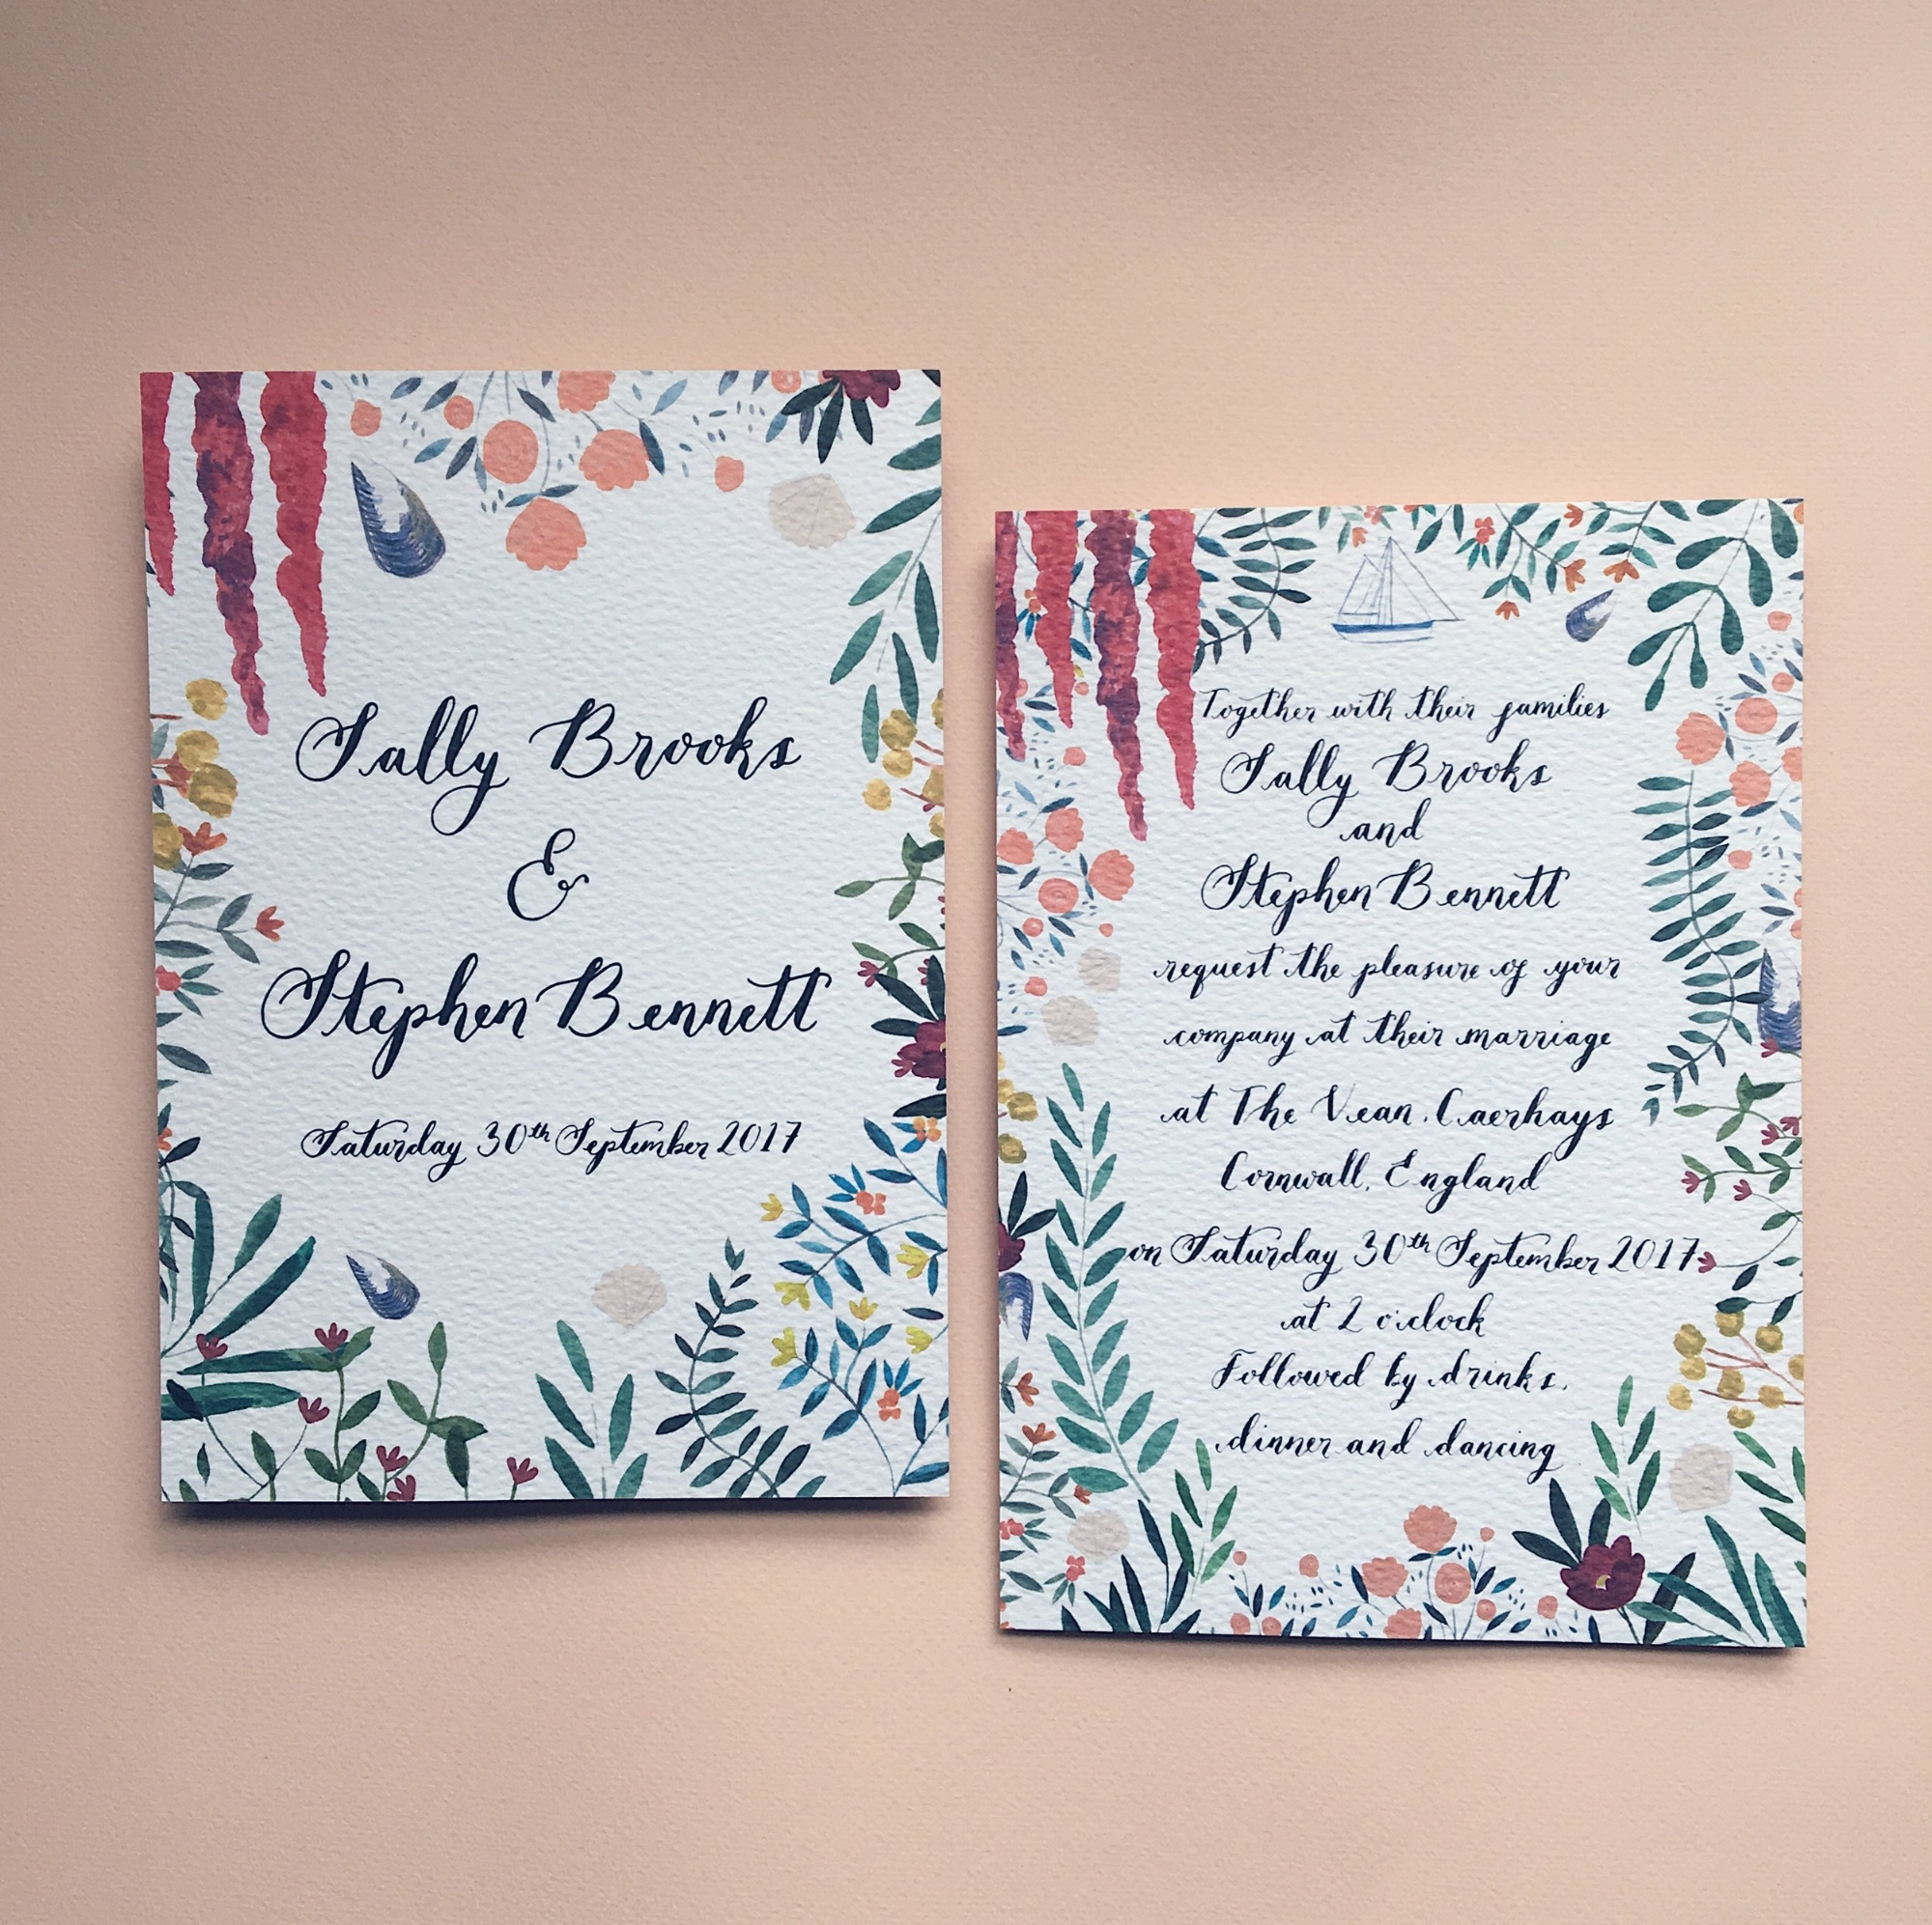 Sally & Stephen - Bespoke Wedding Invitation